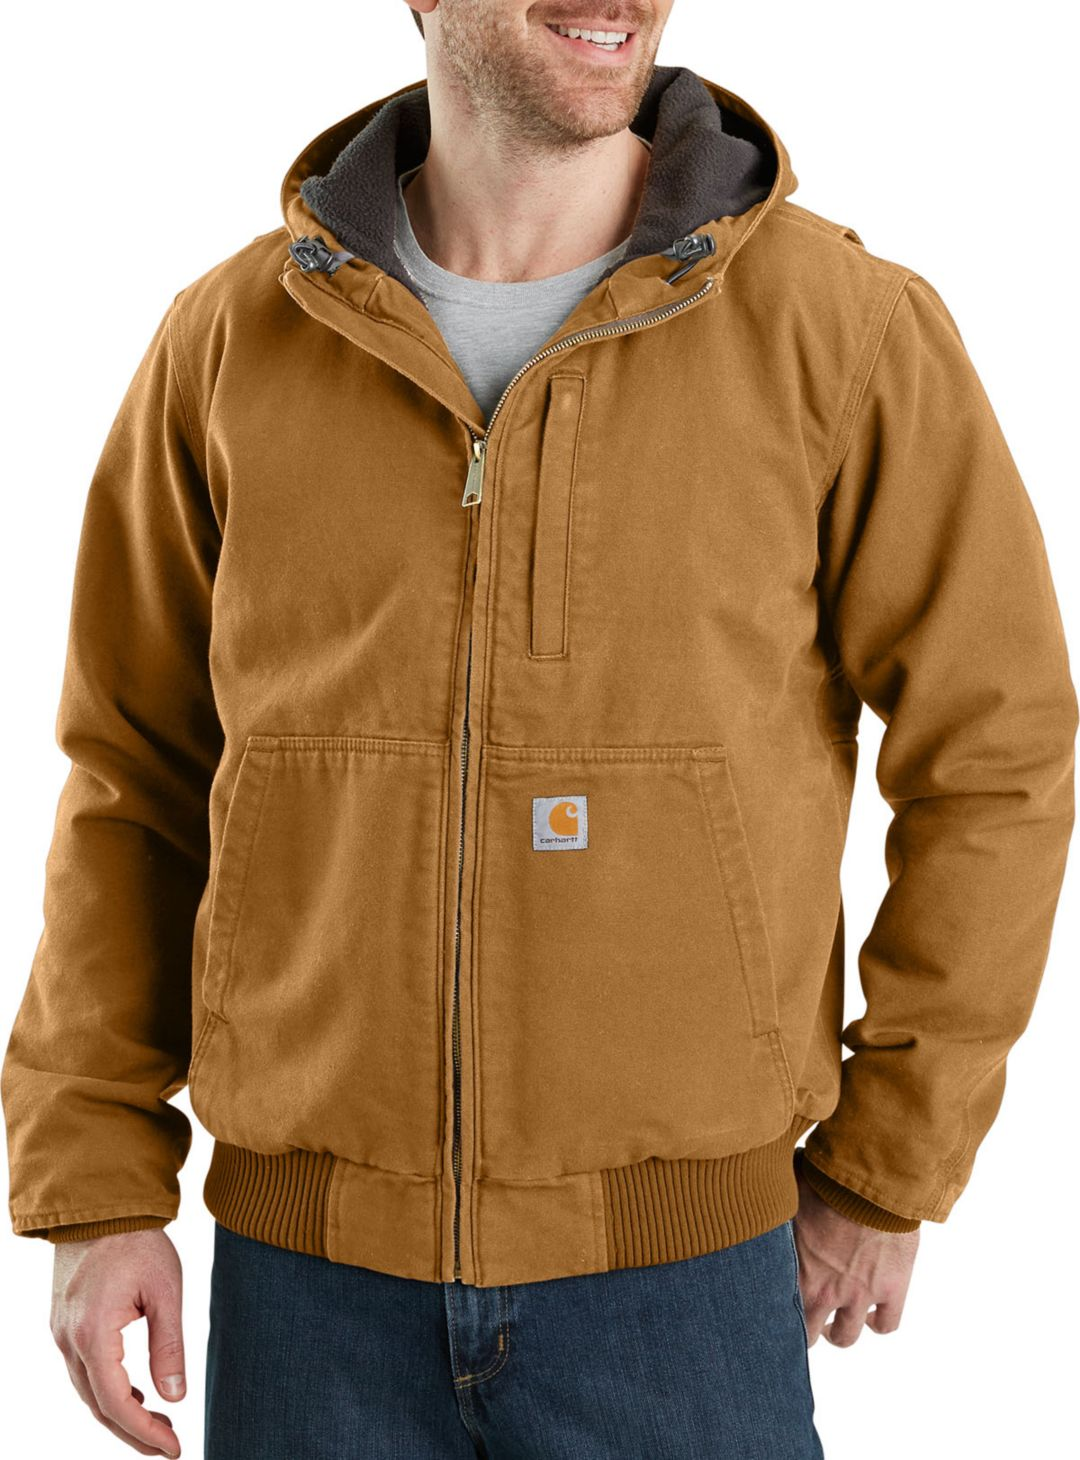 54318db8b9 Carhartt Men's Full Swing Armstrong Active Jacket | DICK'S Sporting ...